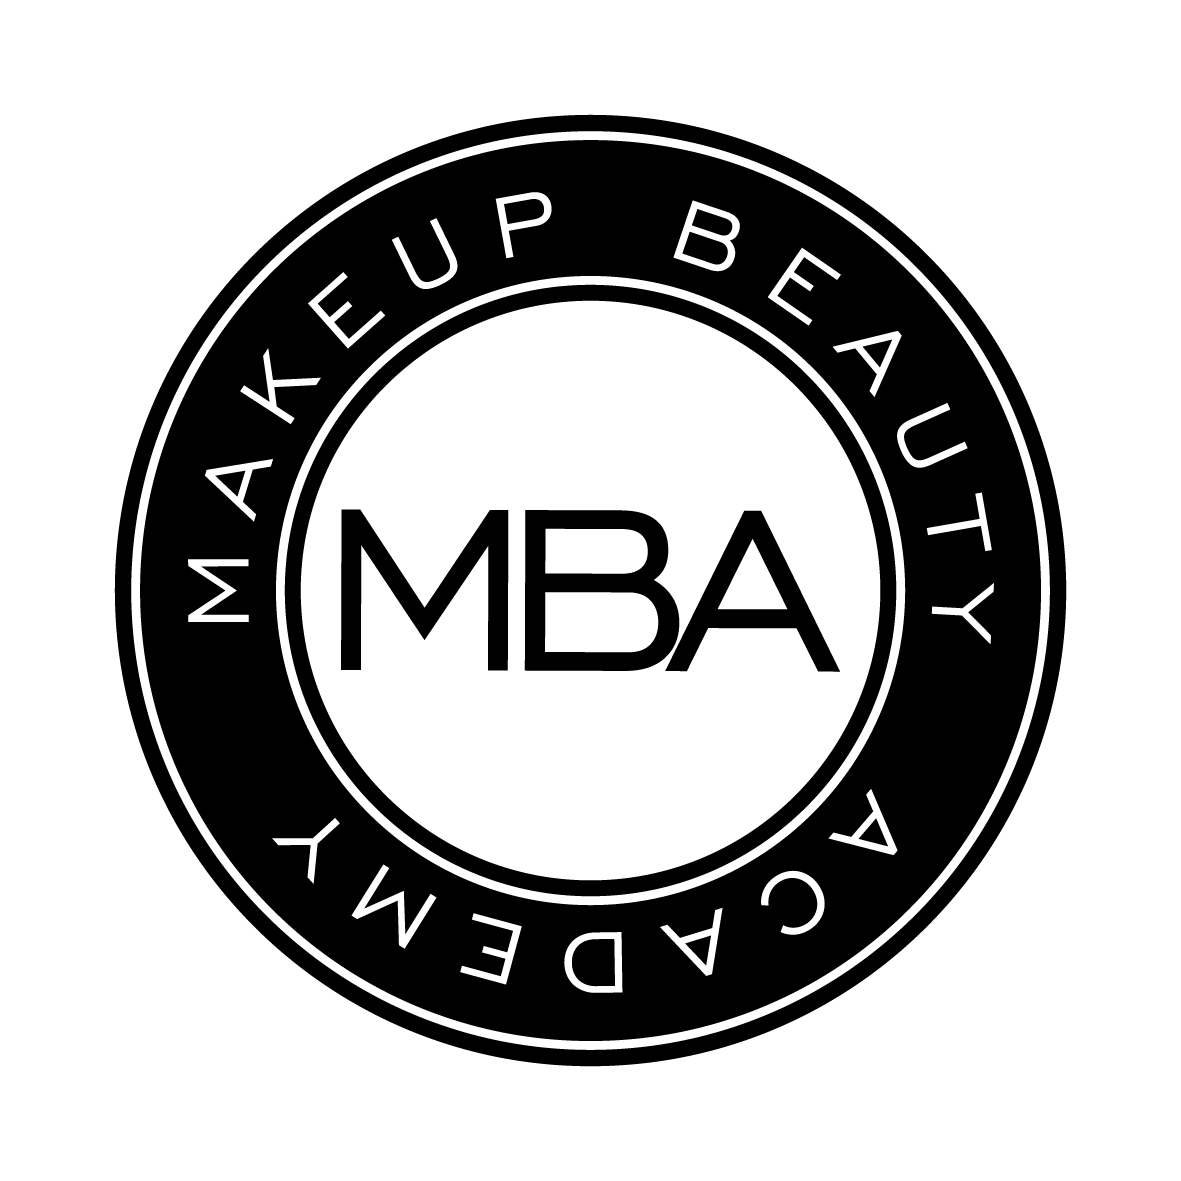 Make-Up Beauty Academy